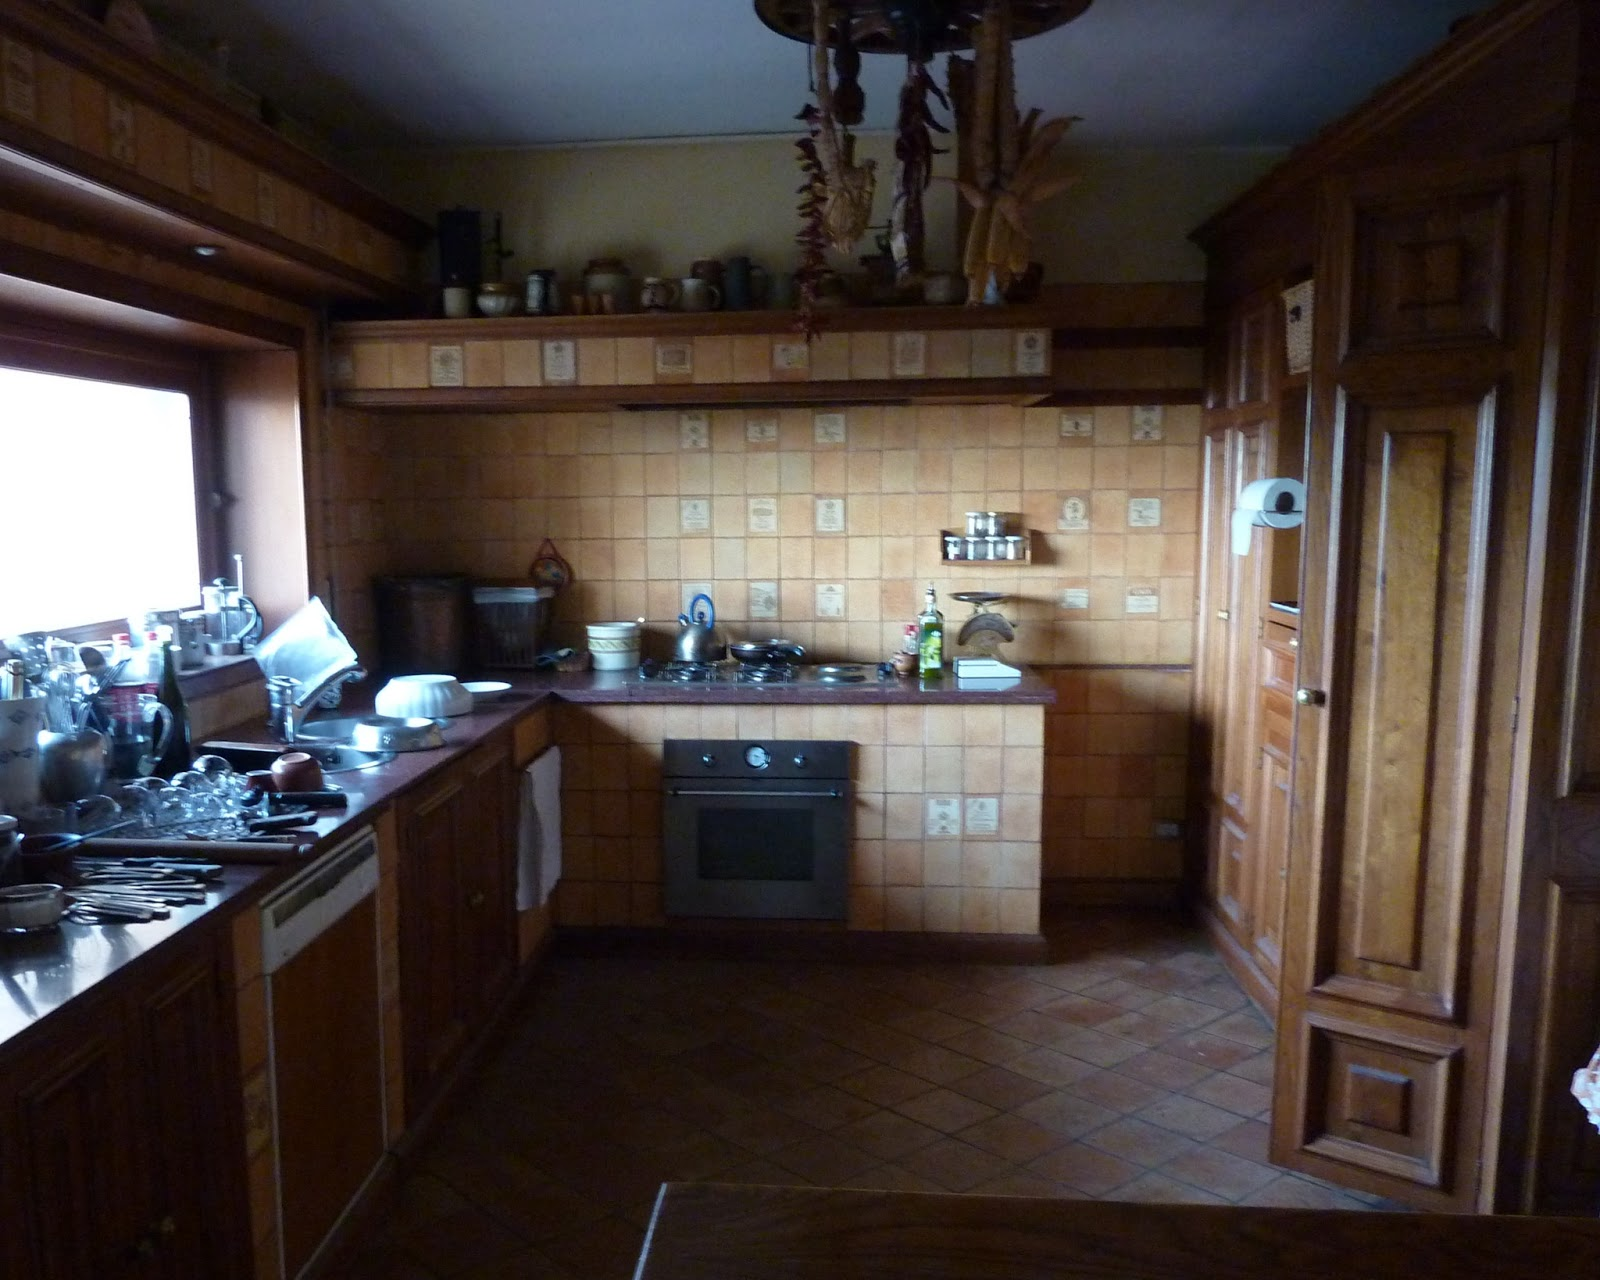 My new old life country kitchen la cucina economica for Cucina country economica